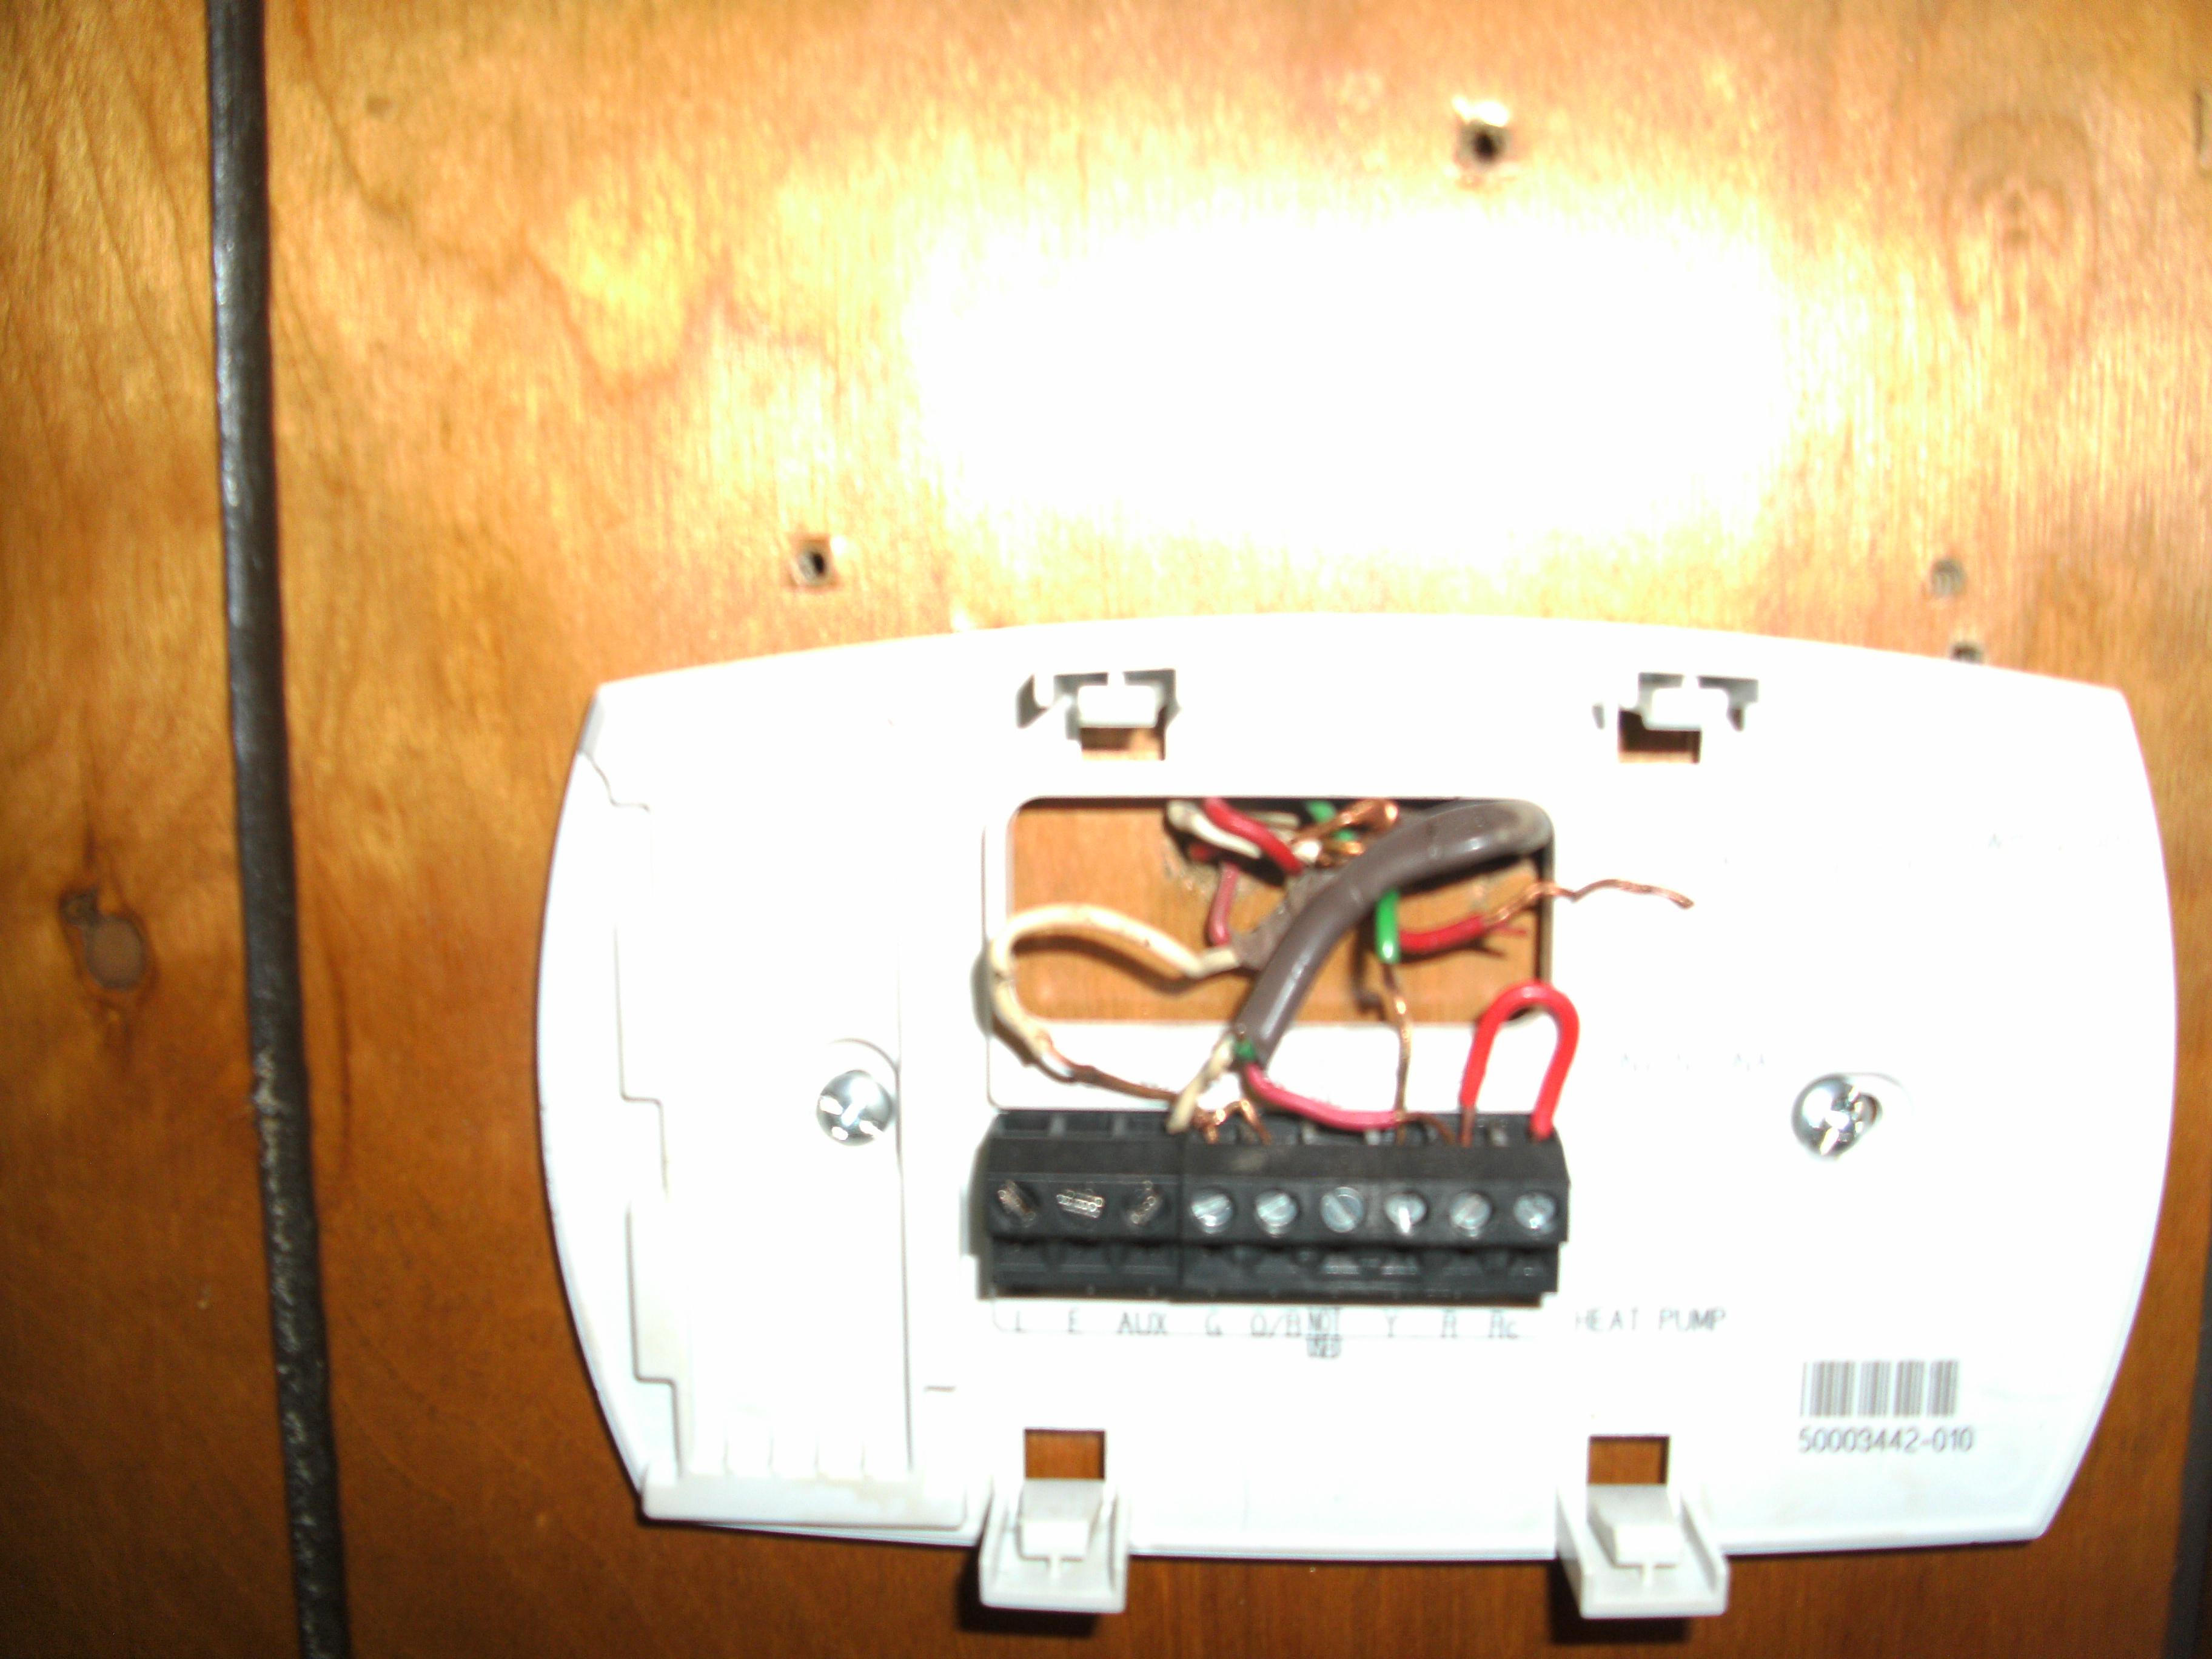 have a honeywell rth6350 wired as follows wires not original Honeywell RTH6350 Thermostat Manual 2013 06 29 200210 075